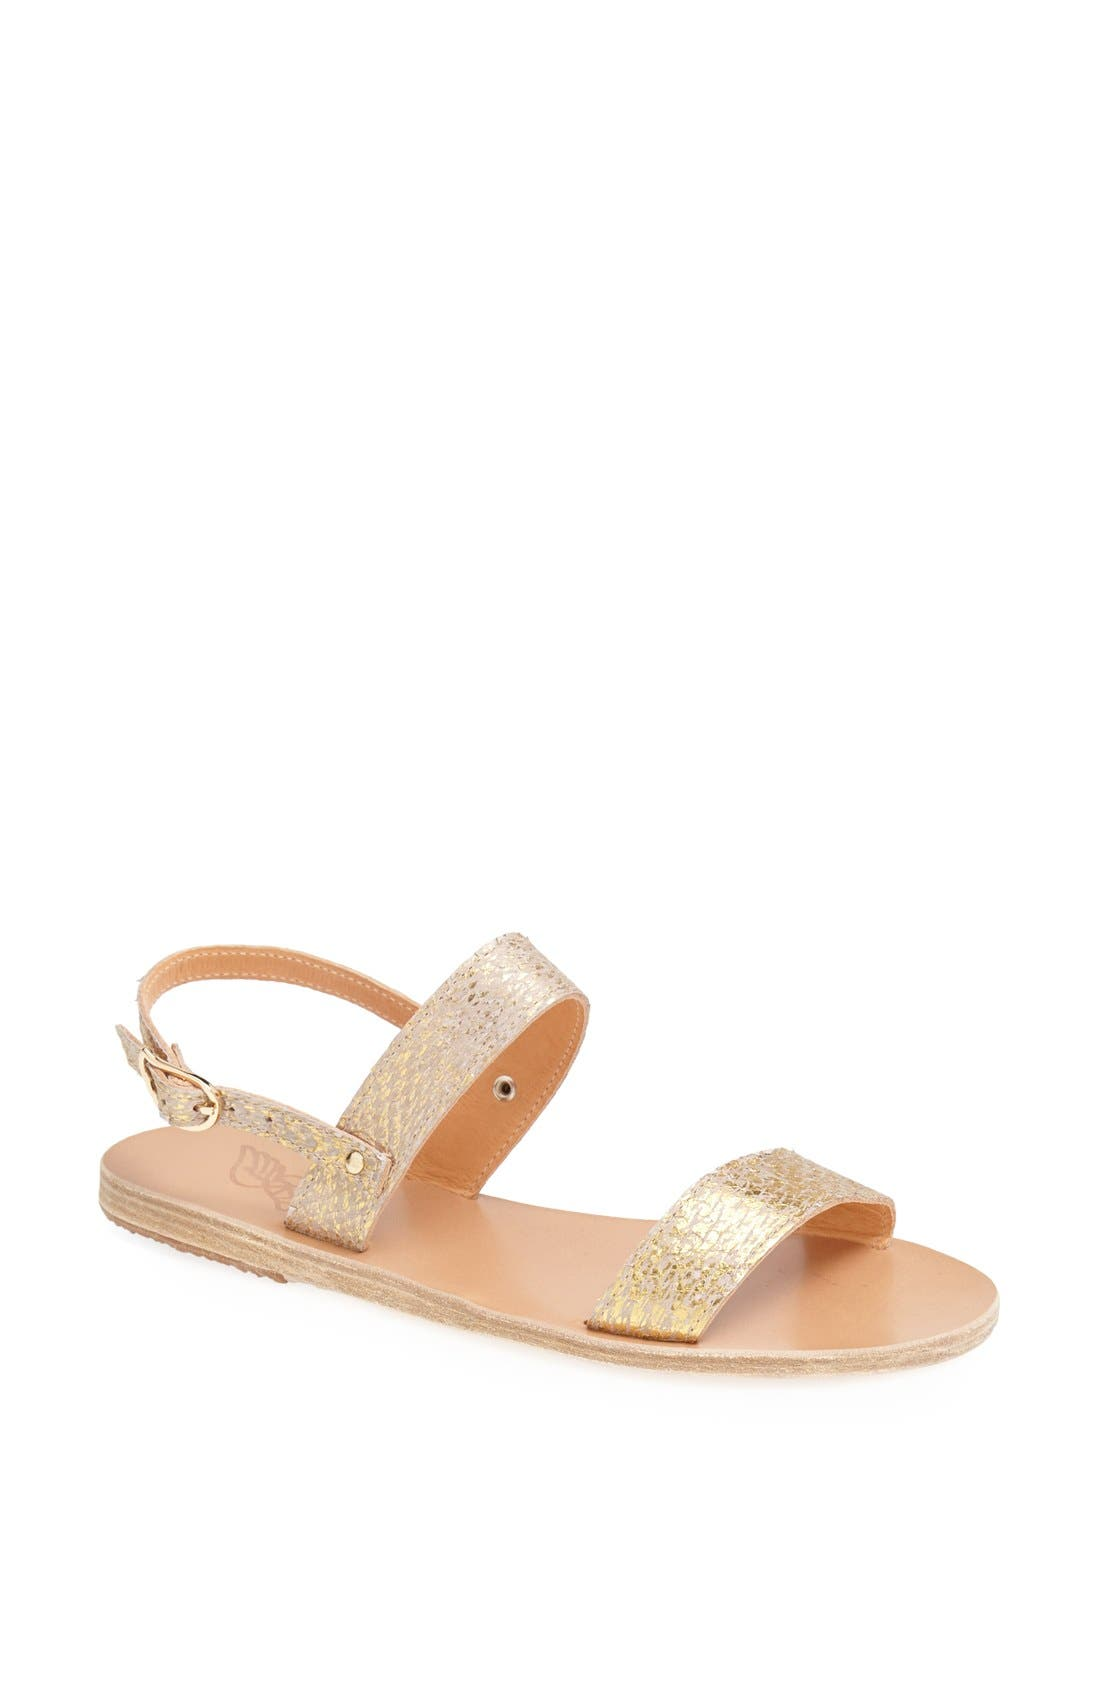 Alternate Image 1 Selected - Ancient Greek Sandals 'Clio' Metallic Salmon Skin Sandal